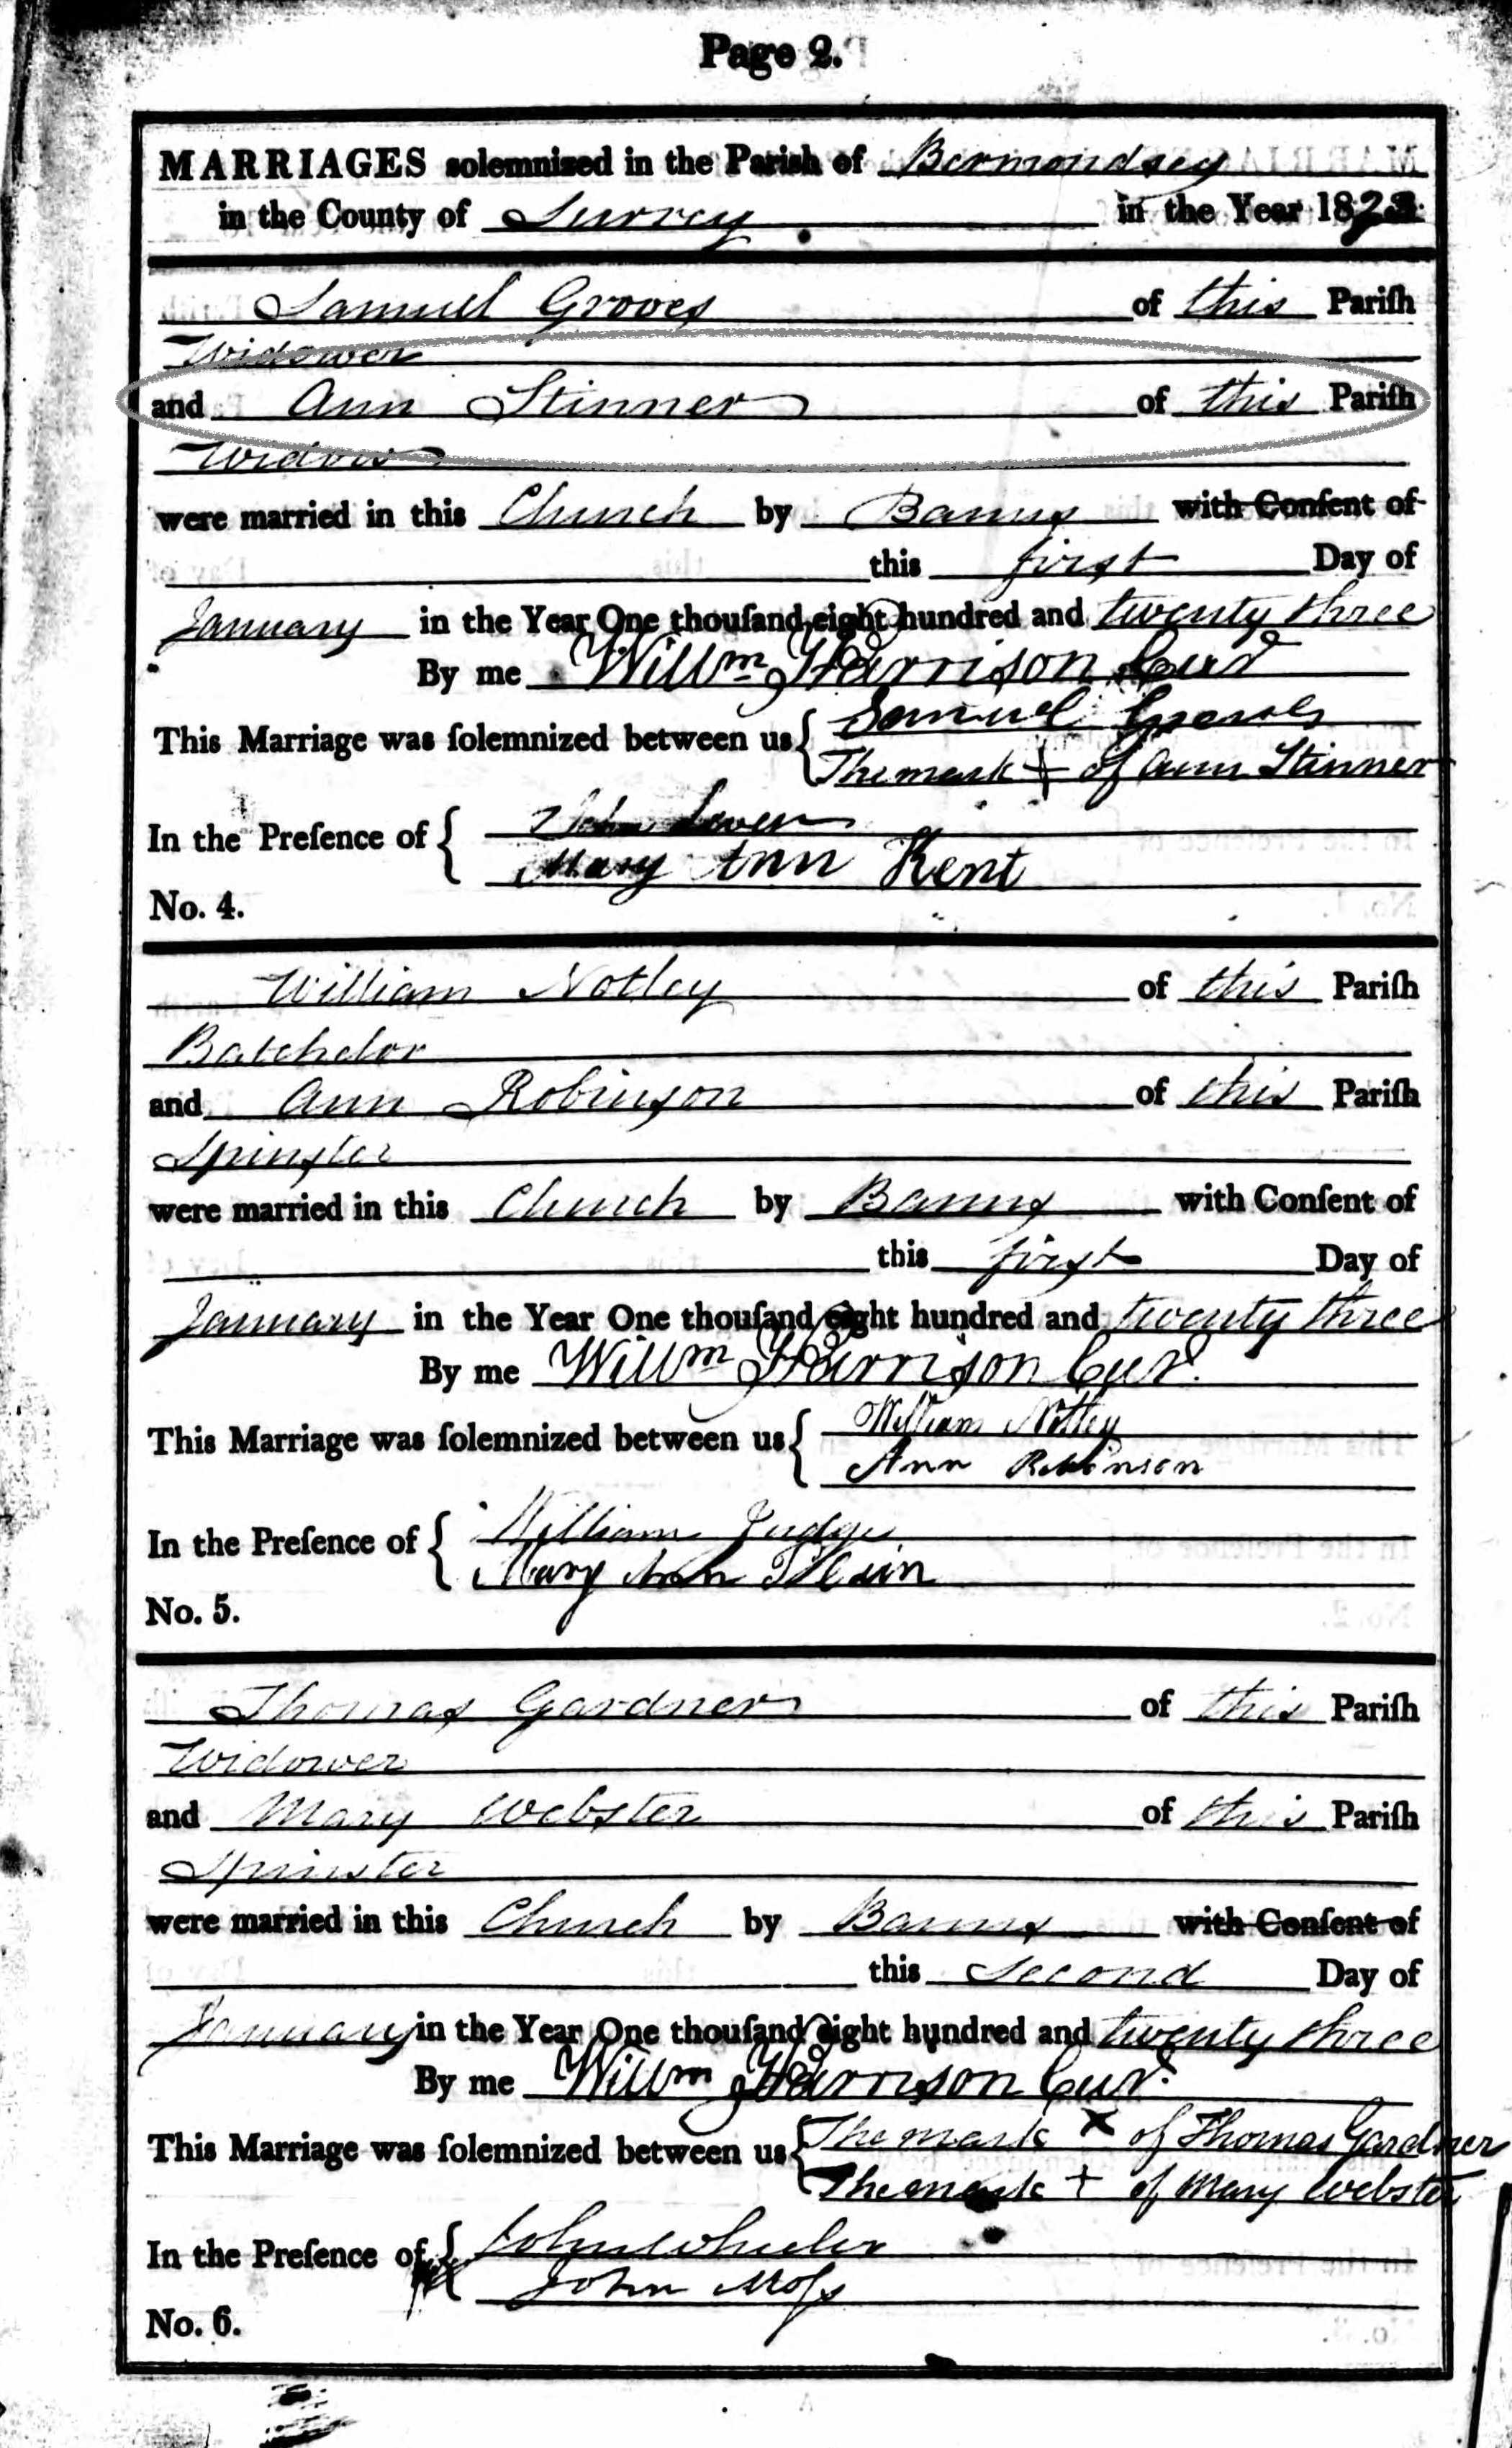 Marriage Entry for Ann Porter Stinner and Samuel Groves